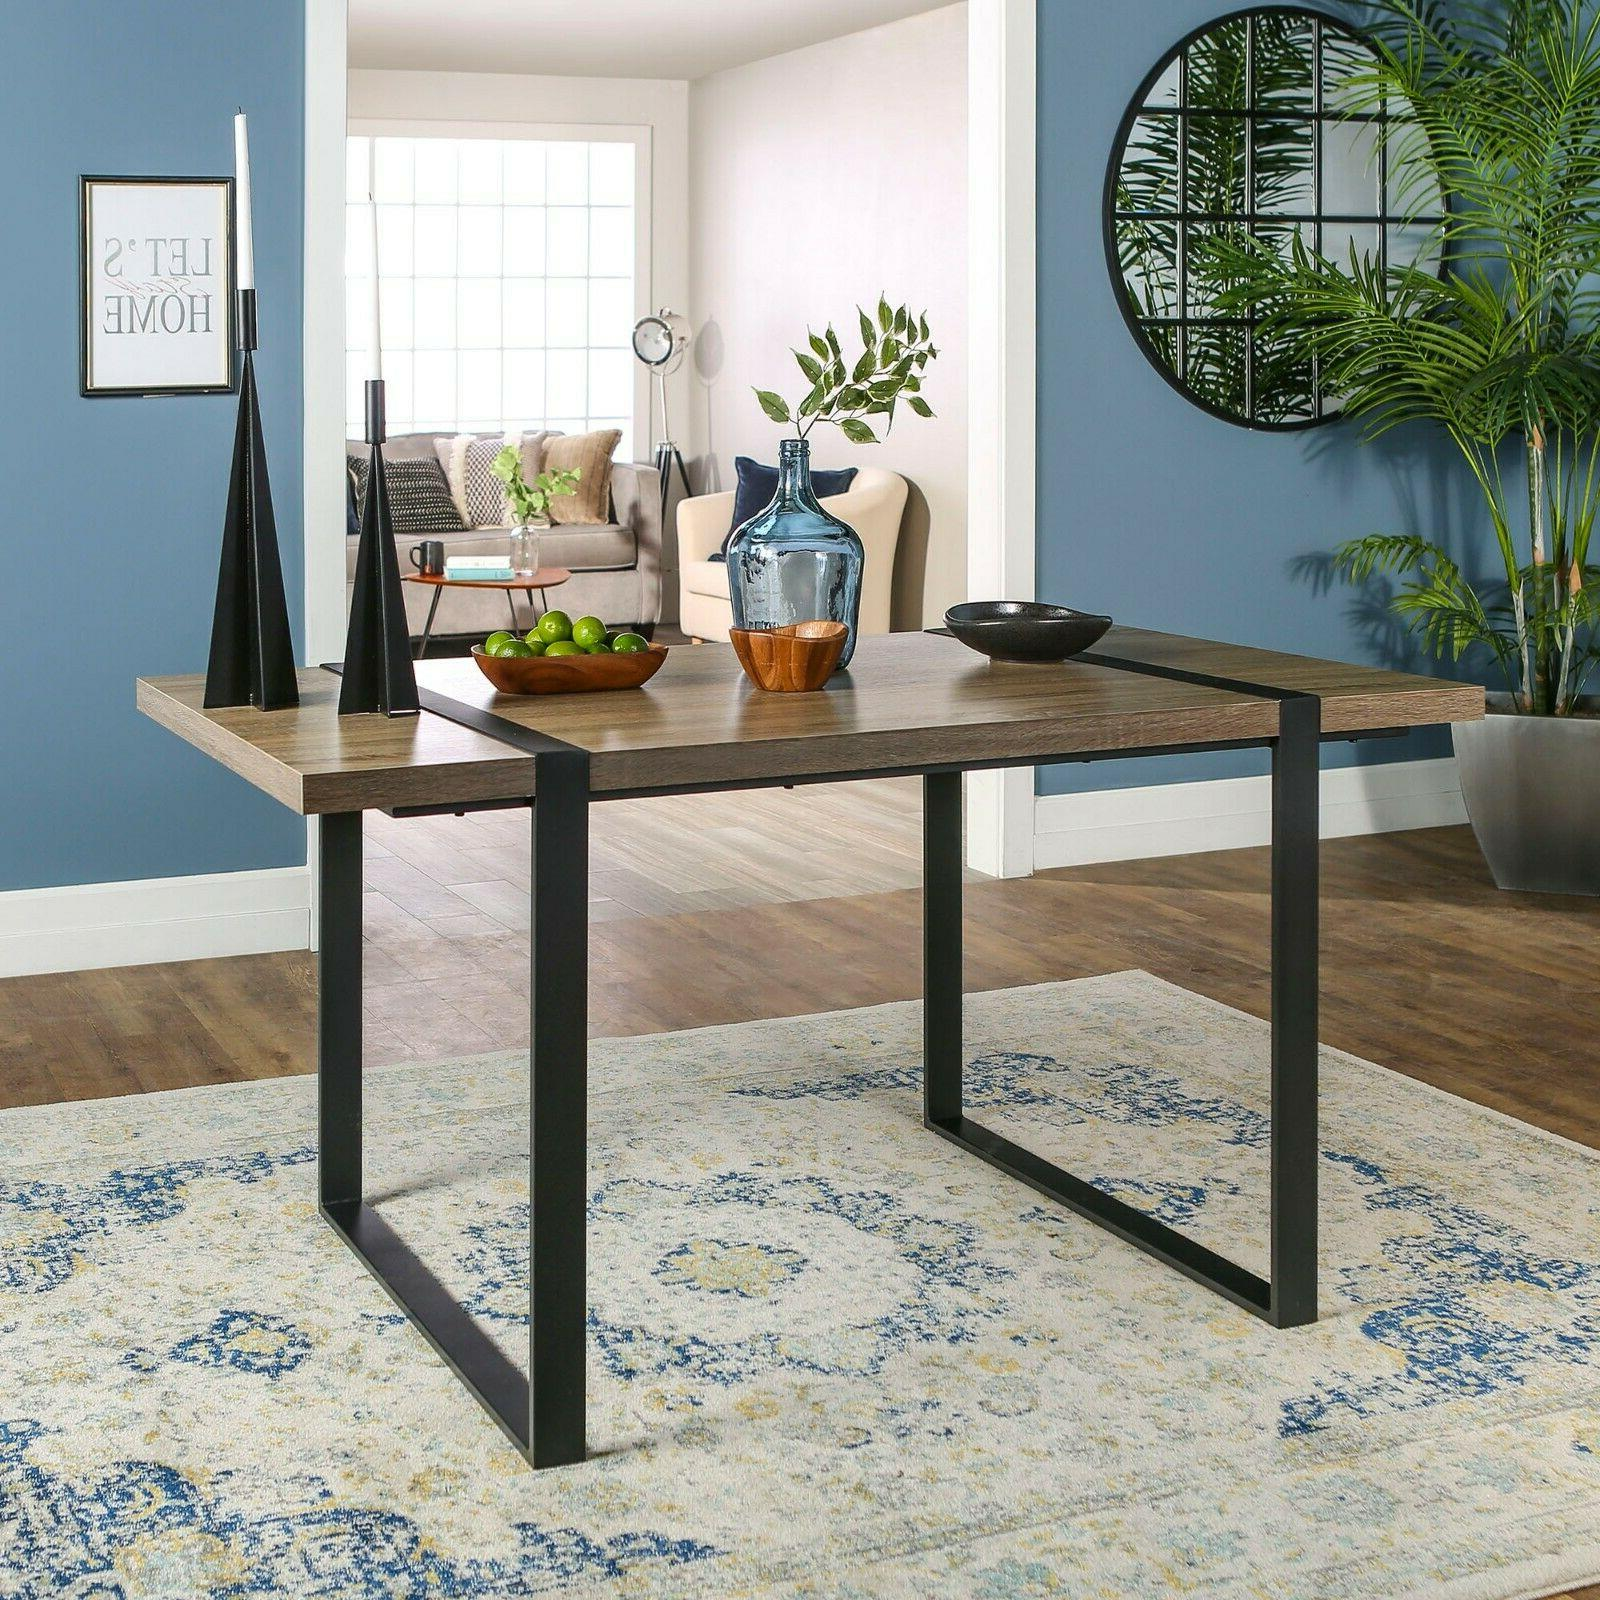 NEW Driftwood Modern Industrial Style Dining Room Table Meta